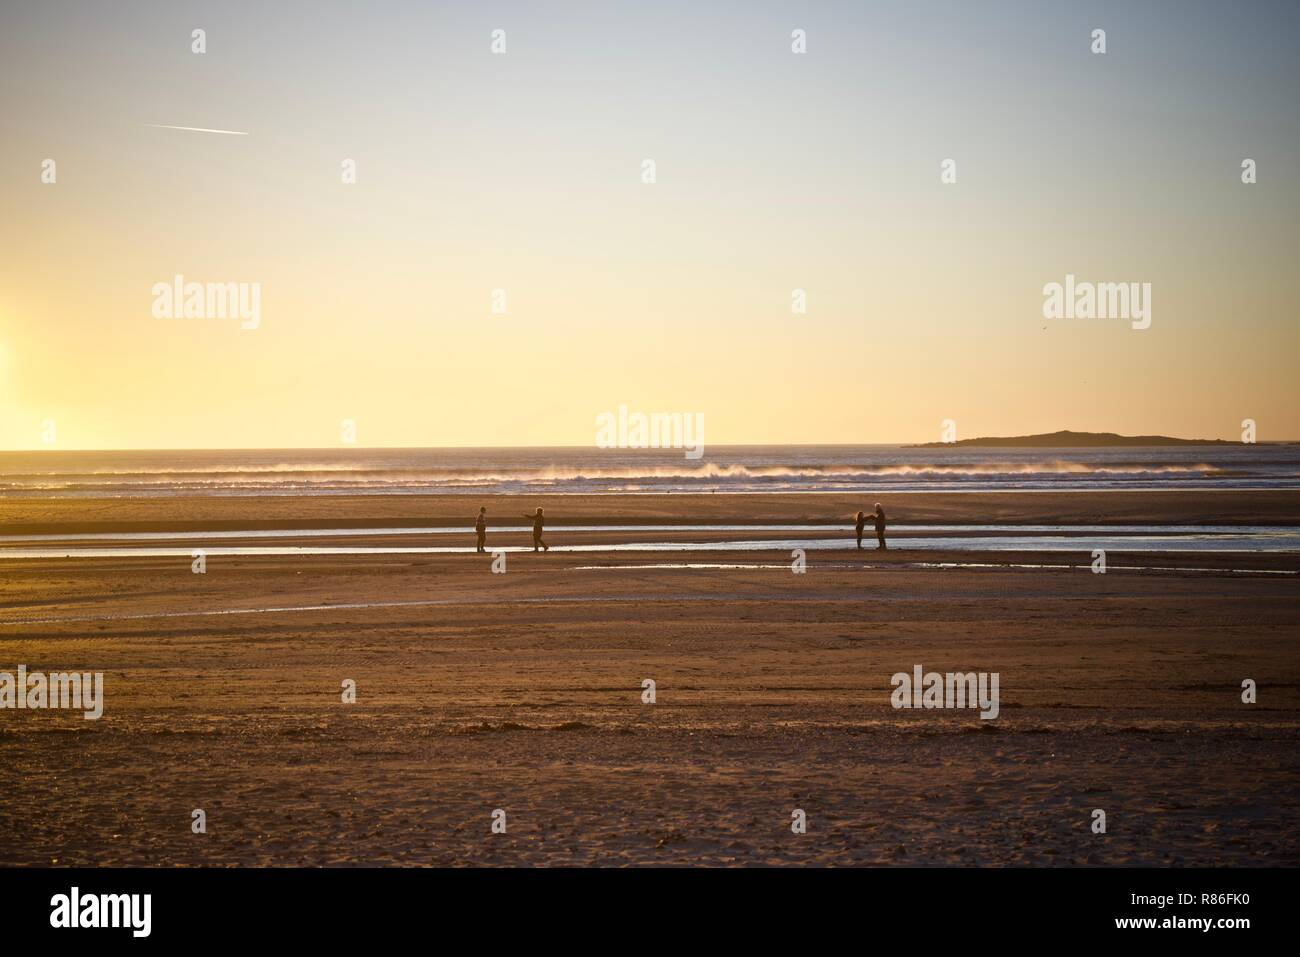 People walking on the beach in Rhosneigr, Anglesey, Wales, UK - Stock Image